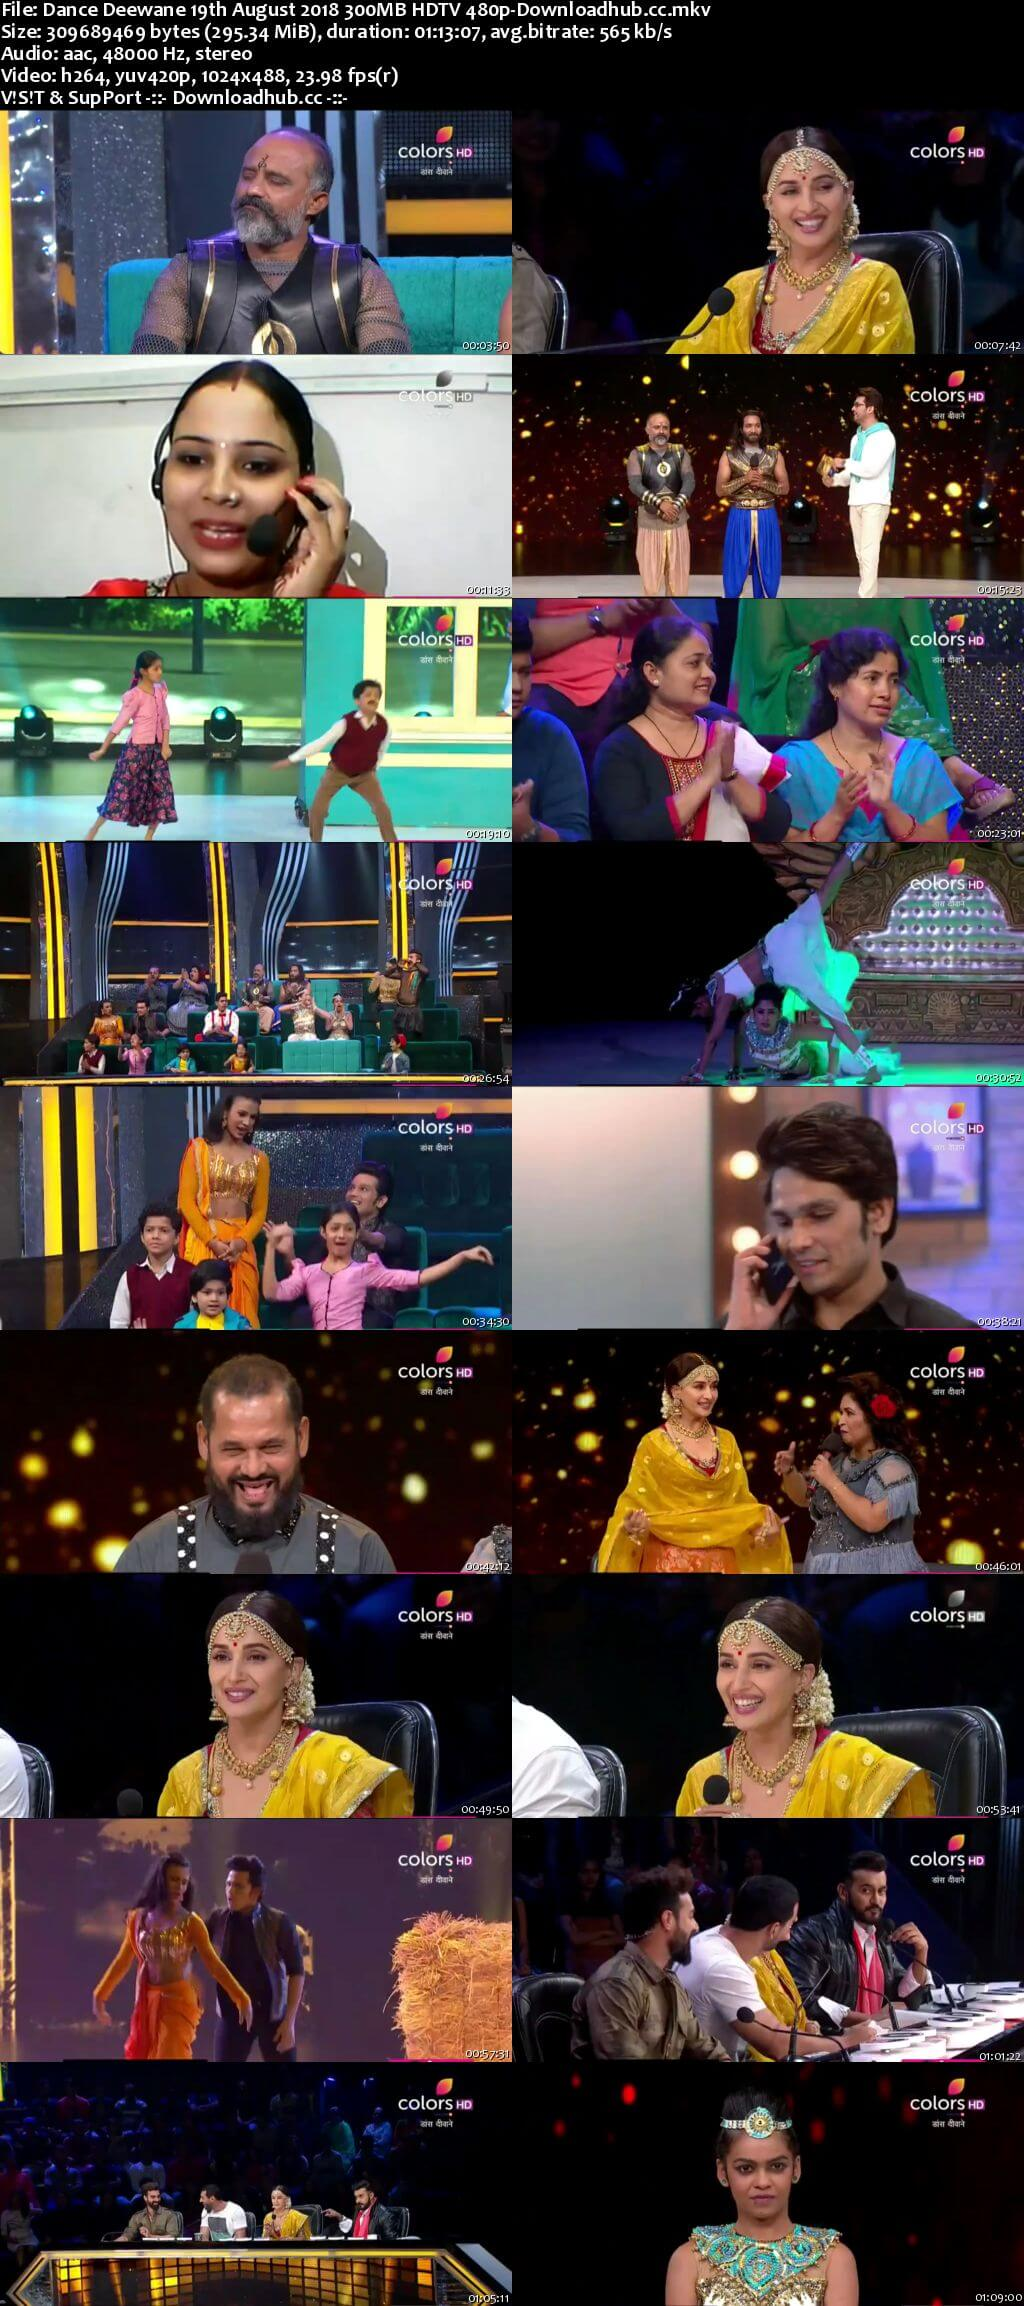 Dance Deewane 19 August 2018 Episode 23 HDTV 480p